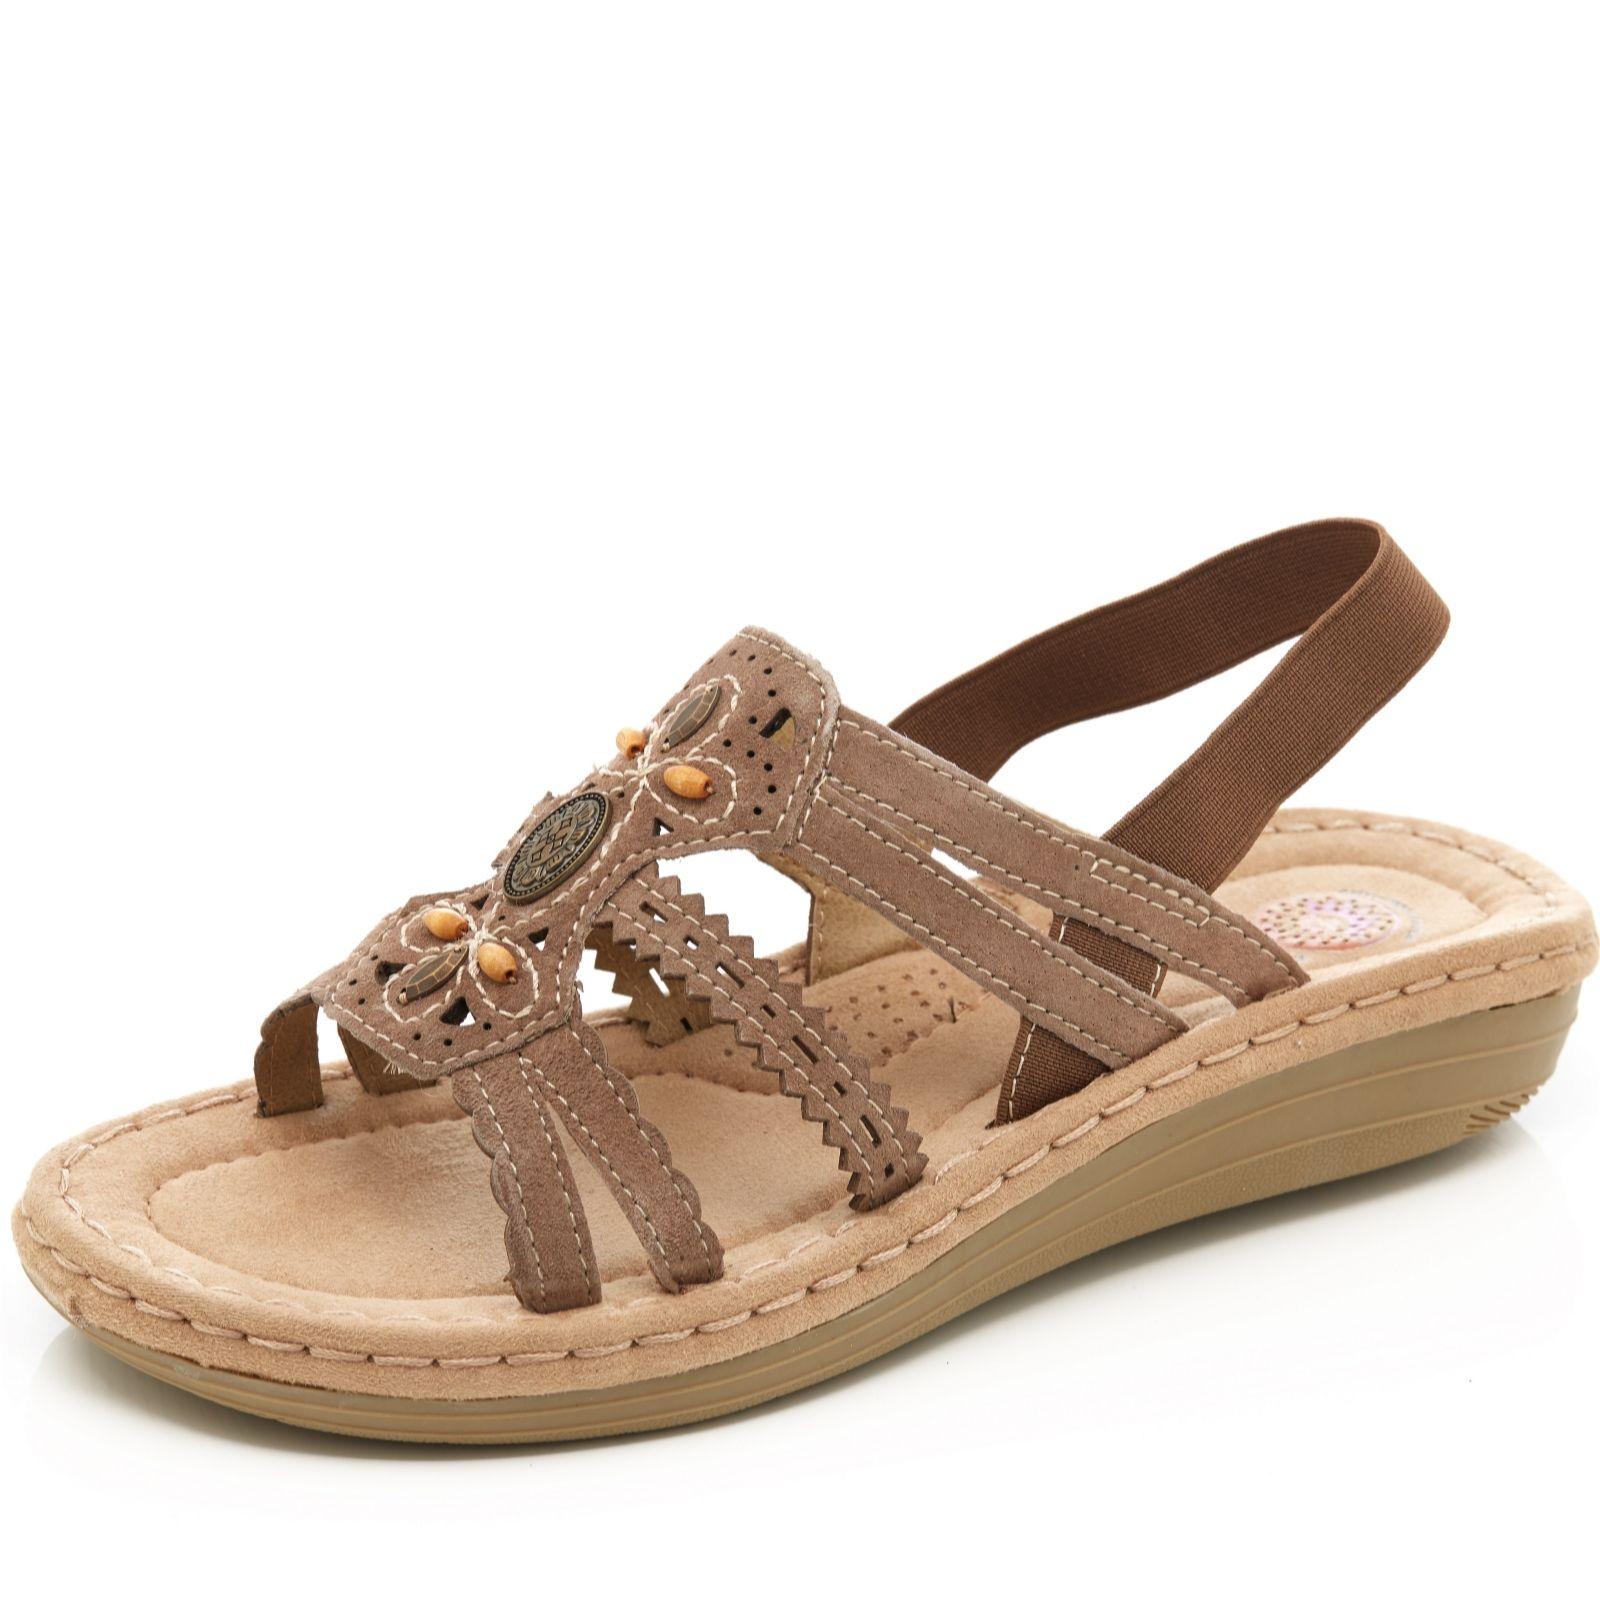 6bcea7f70fa8 Earth Spirit Portland Suede Wedge Sandal - QVC UK